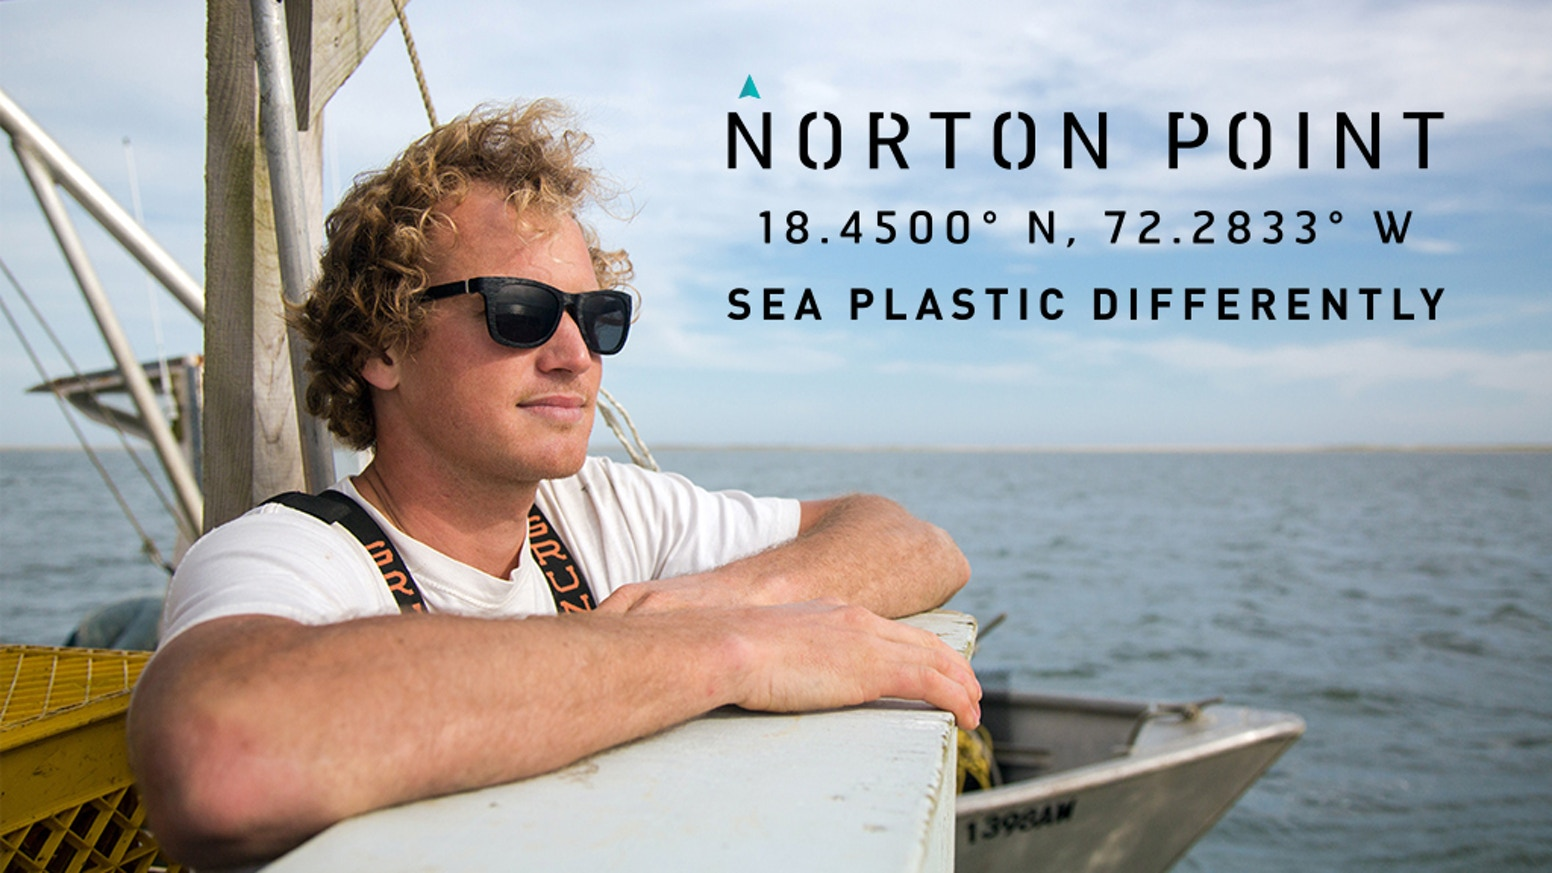 Cleaning our oceans by recovering ocean plastic and turning it into high-end sunglasses.